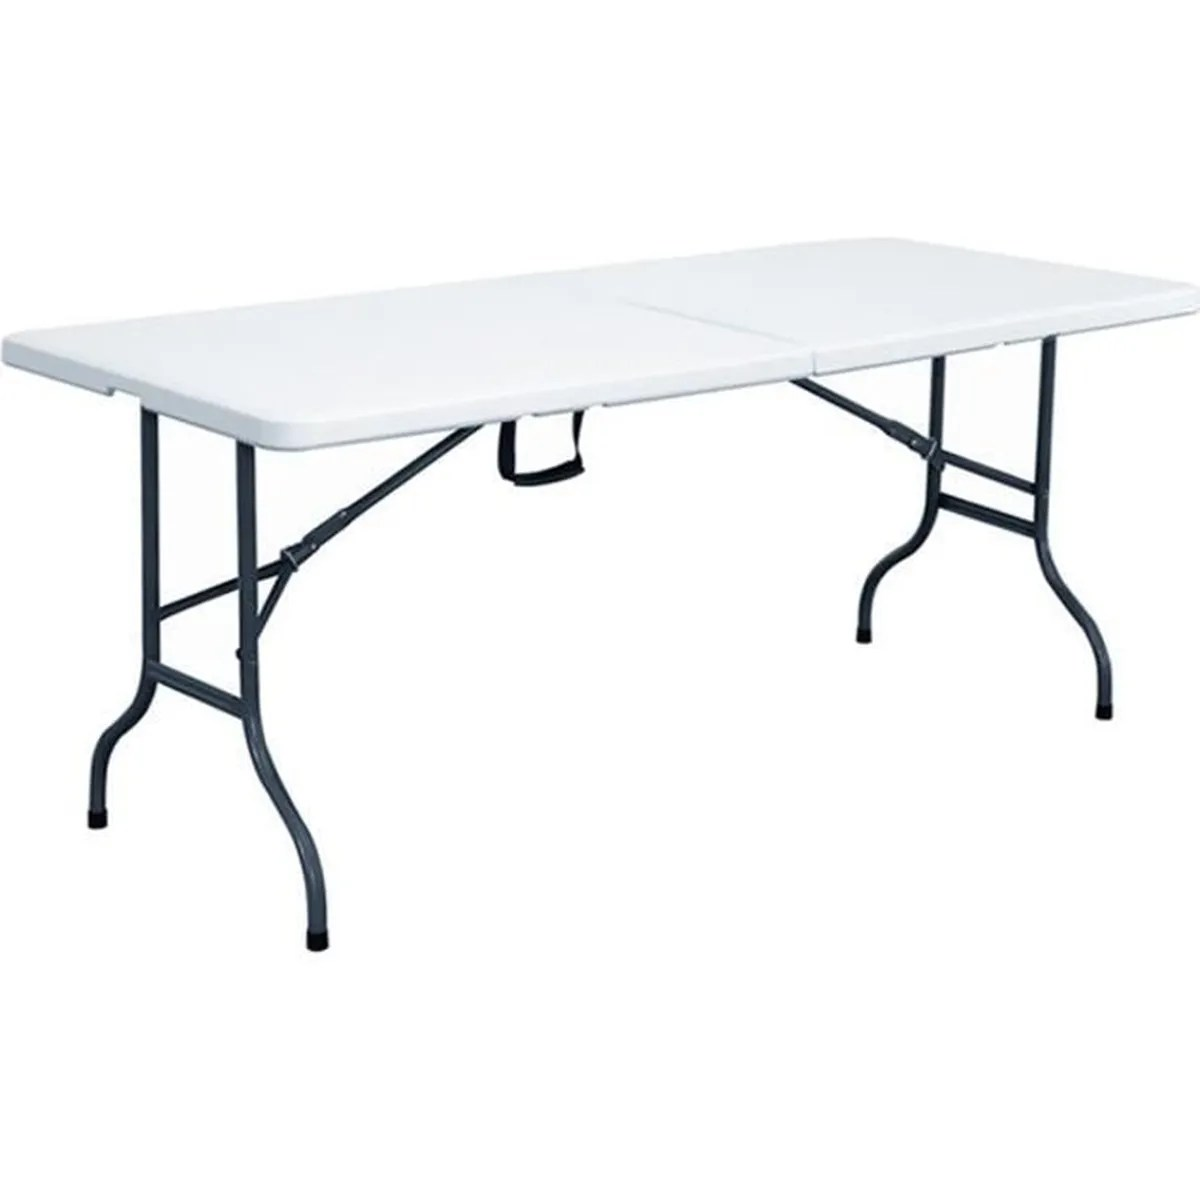 Table Pliante Exterieur Table Pliante Portable 180 Cm 8 Personnes Achat Vente Table De